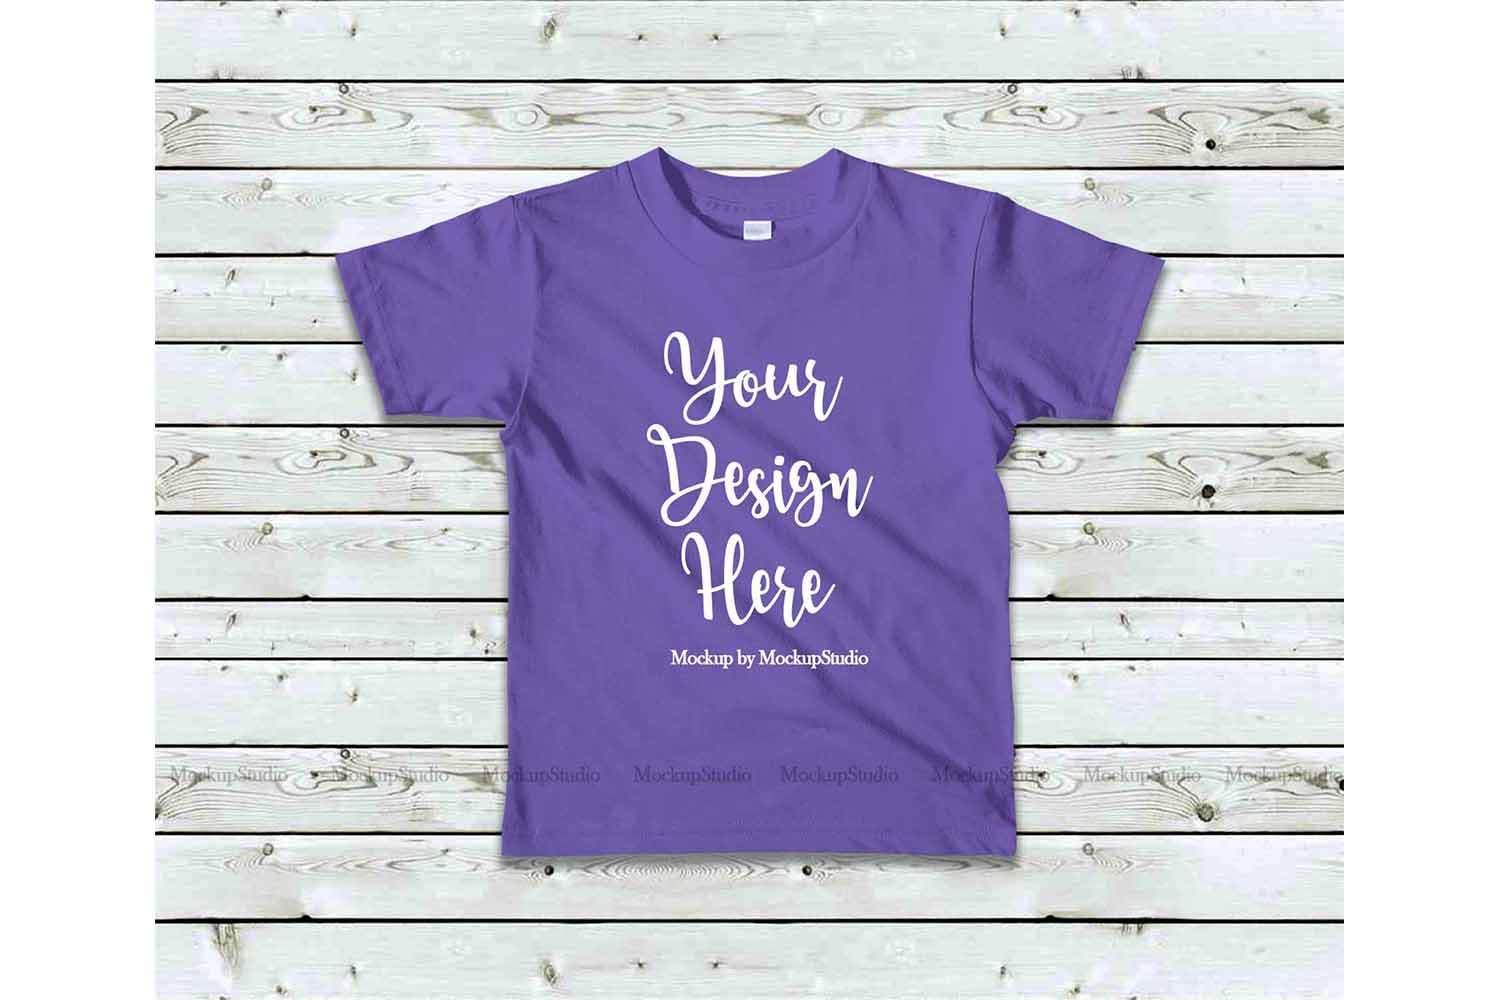 Kids Purple Tshirt Mockup, Toddler Shirt Flat Lay Mock example image 1